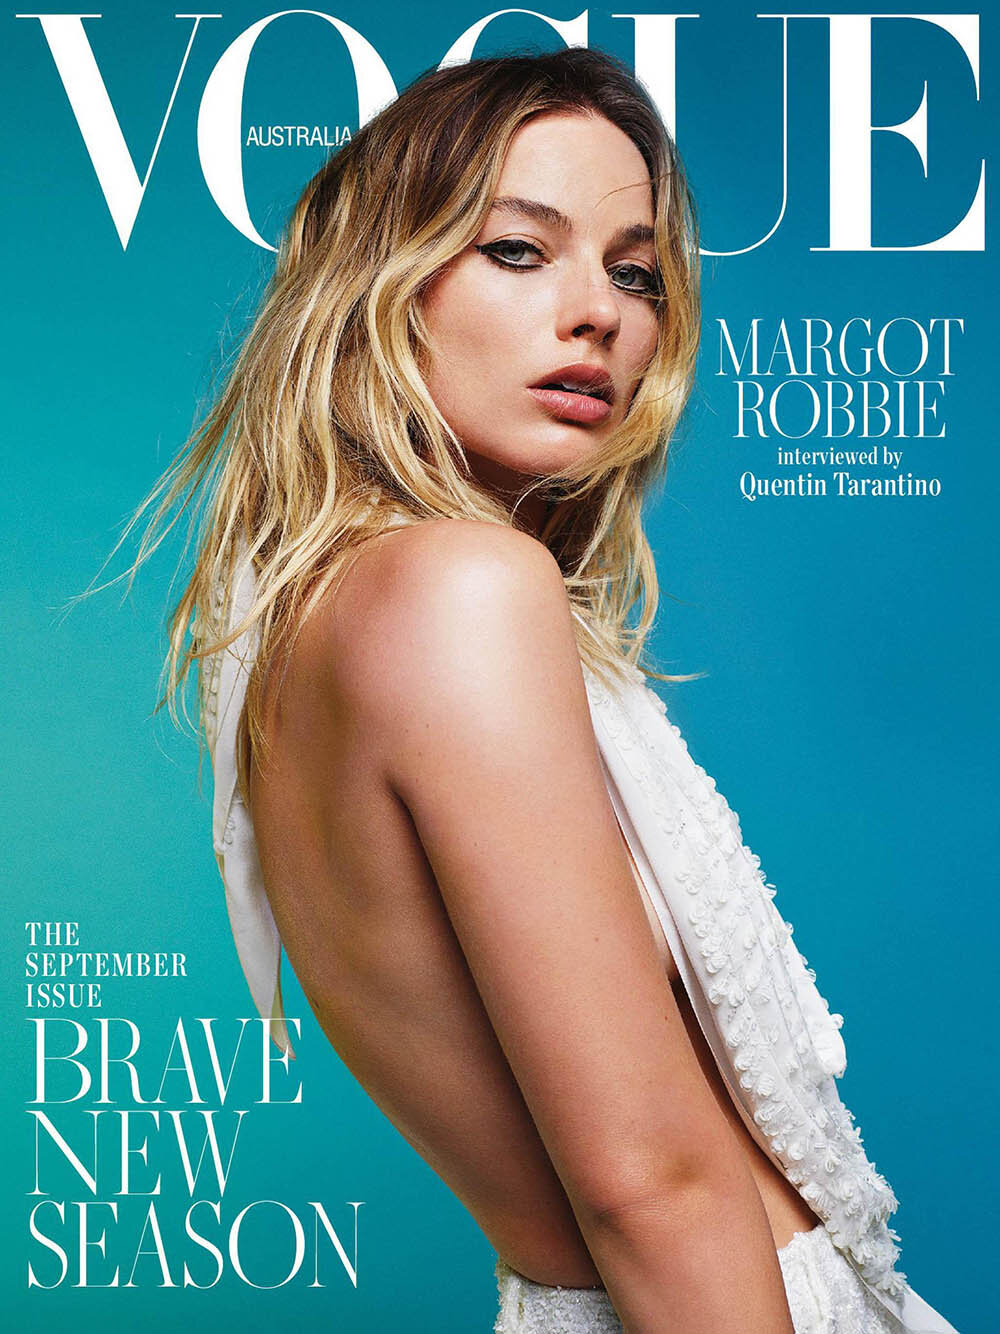 Margot-Robbie-Mario-Sorrenti-Vogue-Australia-September-2019- (3).jpg